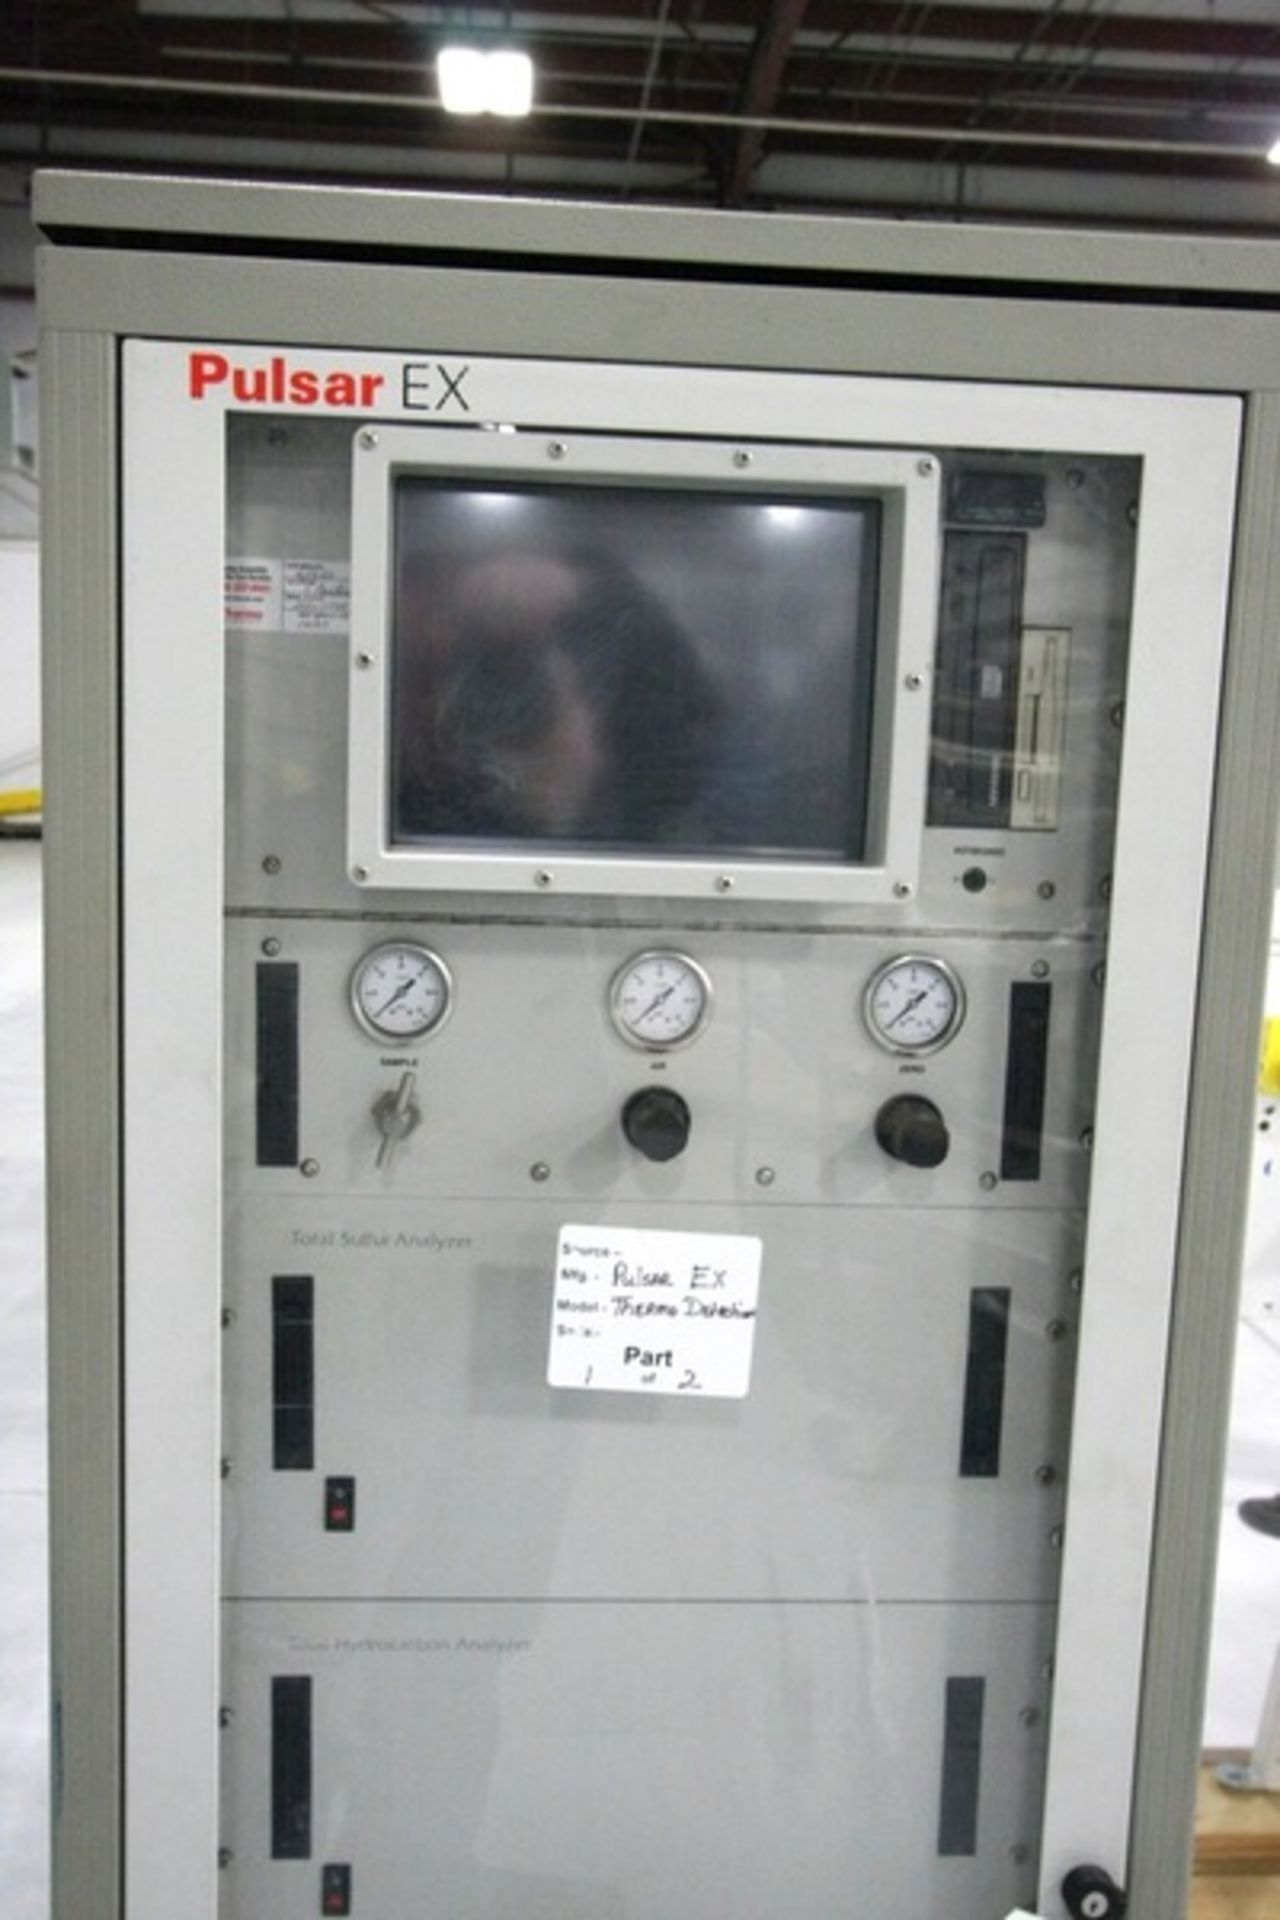 Thermo Electron Pulsar EX CO2 Monitor, Year 2009 - Image 3 of 4